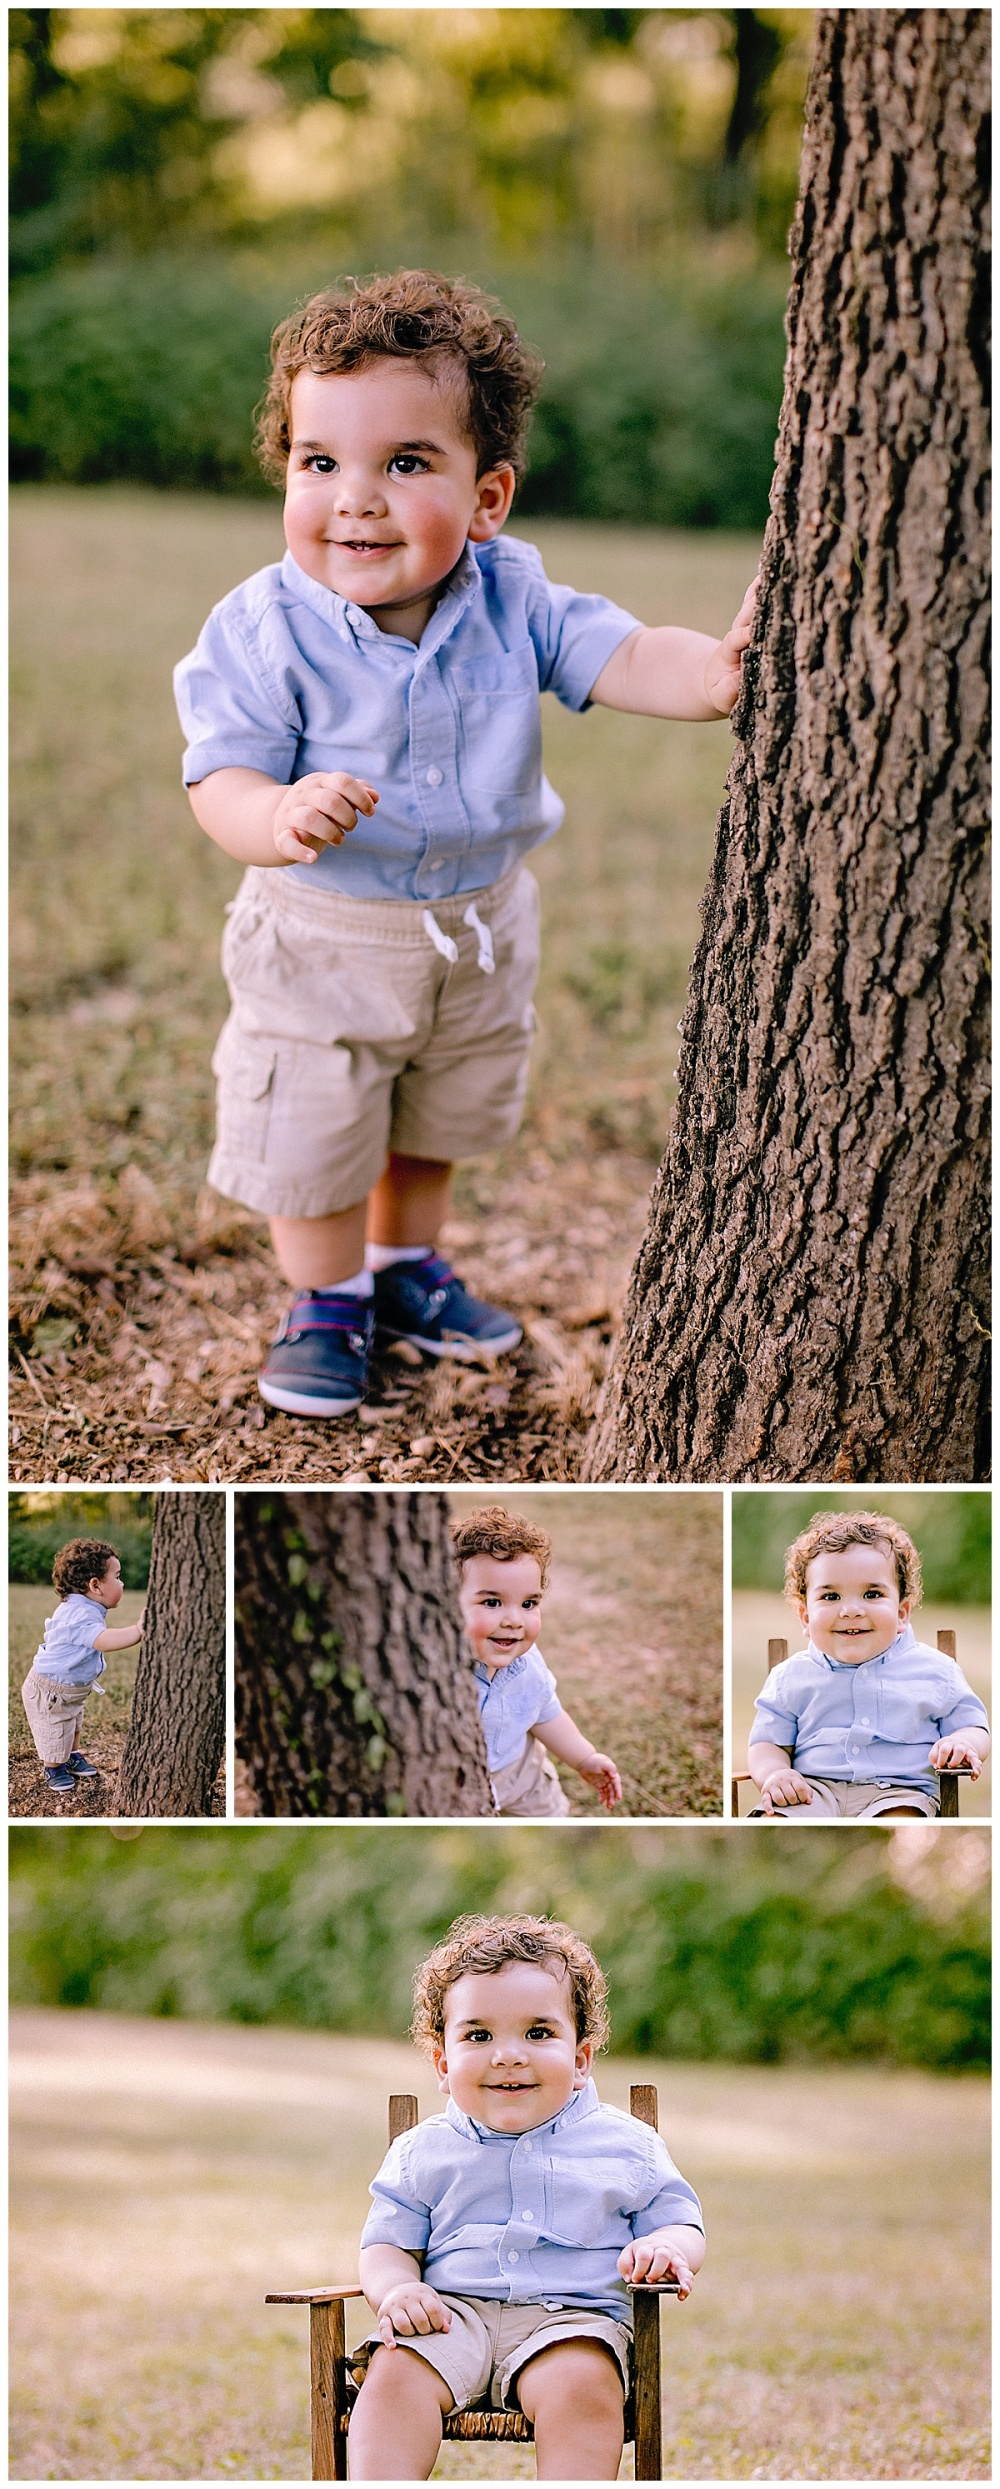 Carly-Barton-Photography-Birthday-Session-Schertz-Texas-Veterans-Park-1-year-family-photos-James_0002.jpg